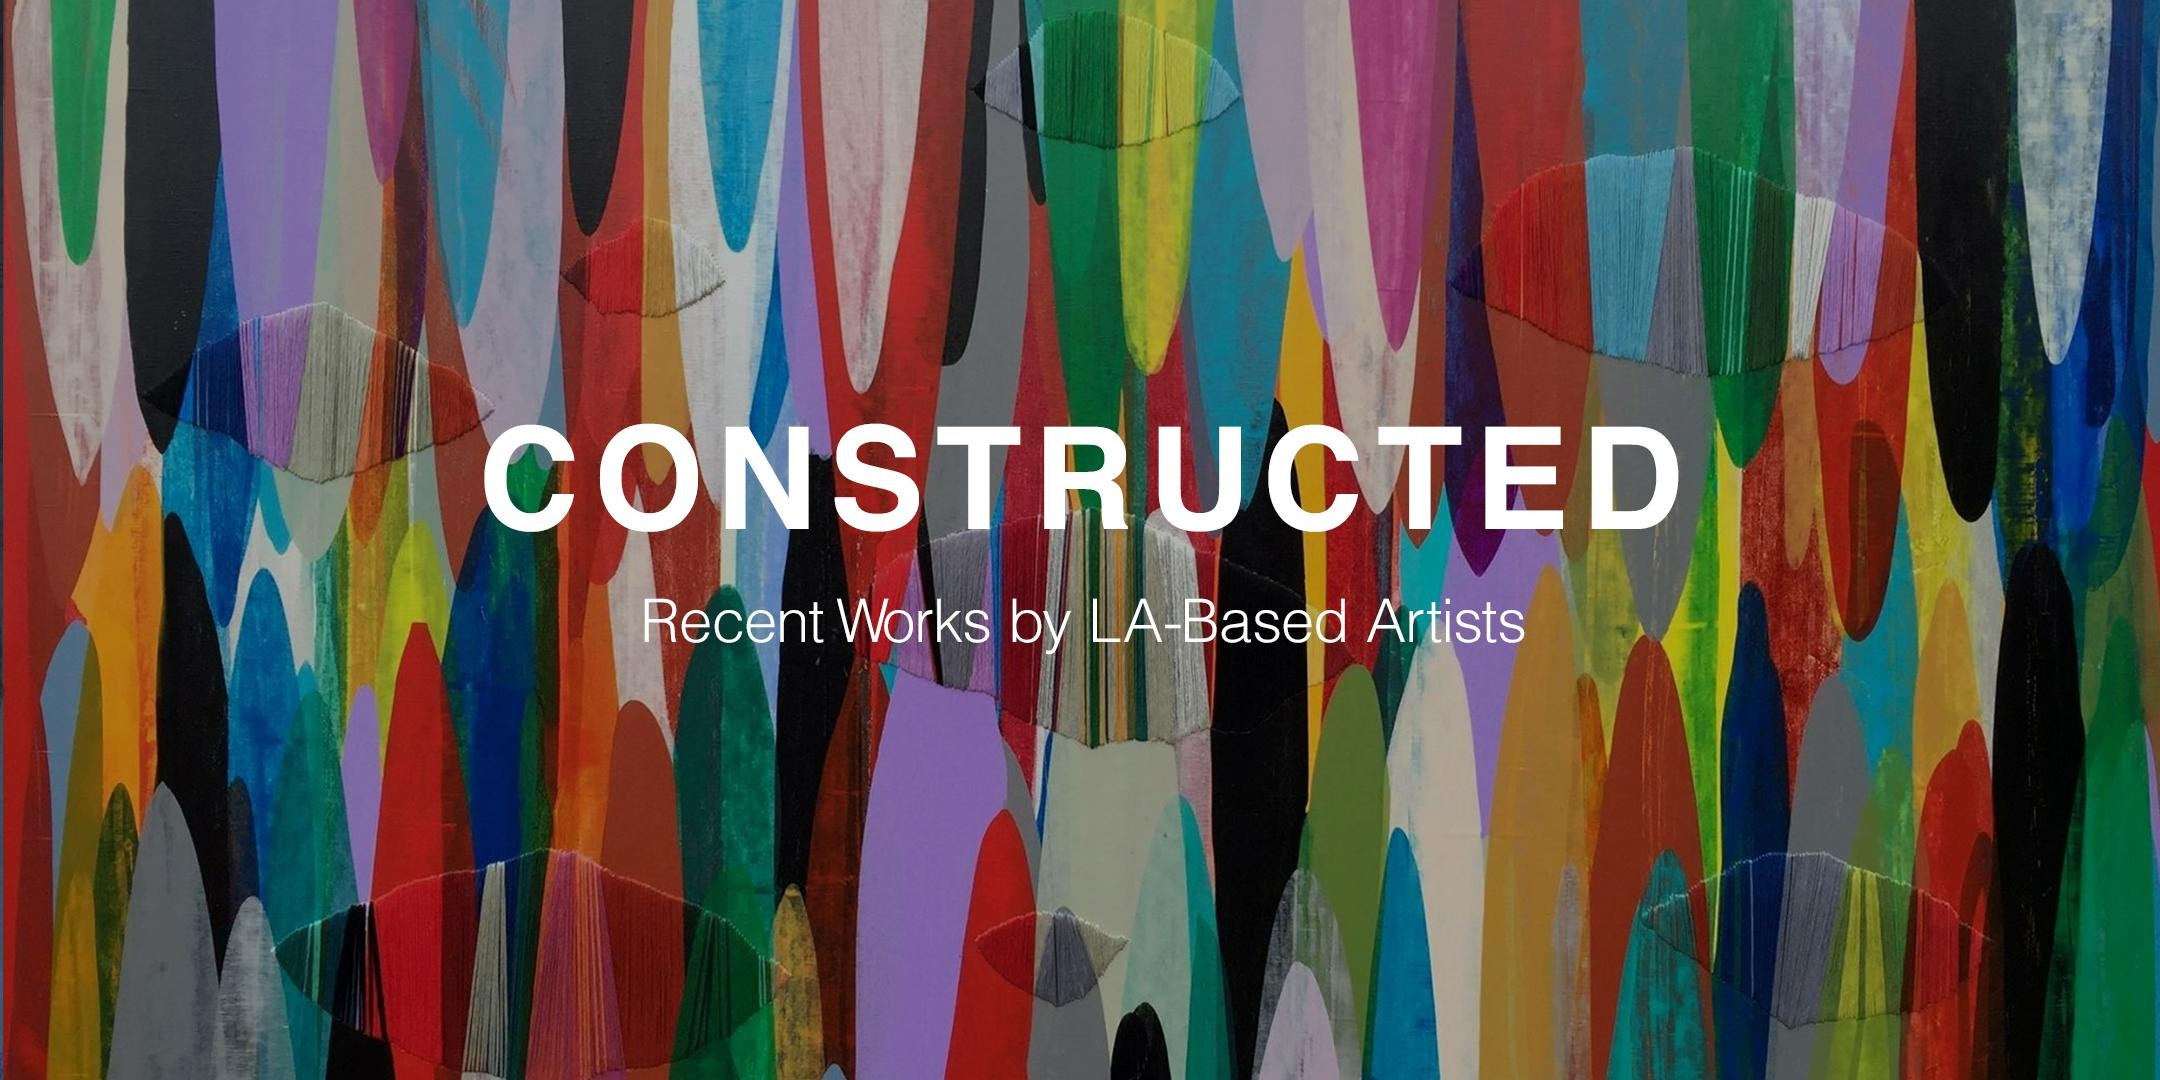 Thursday, February 1, 2017 6-9pm Opening Reception Complimentary valet parking on site   Please RSVP by January 28th    Join Saatchi Art on the evening of February 1st in Santa Monica for the opening of our newest exhibition CONSTRUCTED. This collection of Los Angeles-based artists defy the traditional bounds of their mediums and challenge the physicality of their artistic practice. Quite literally, each artwork is uniquely and innovatively constructed.   www.saatchiart.com